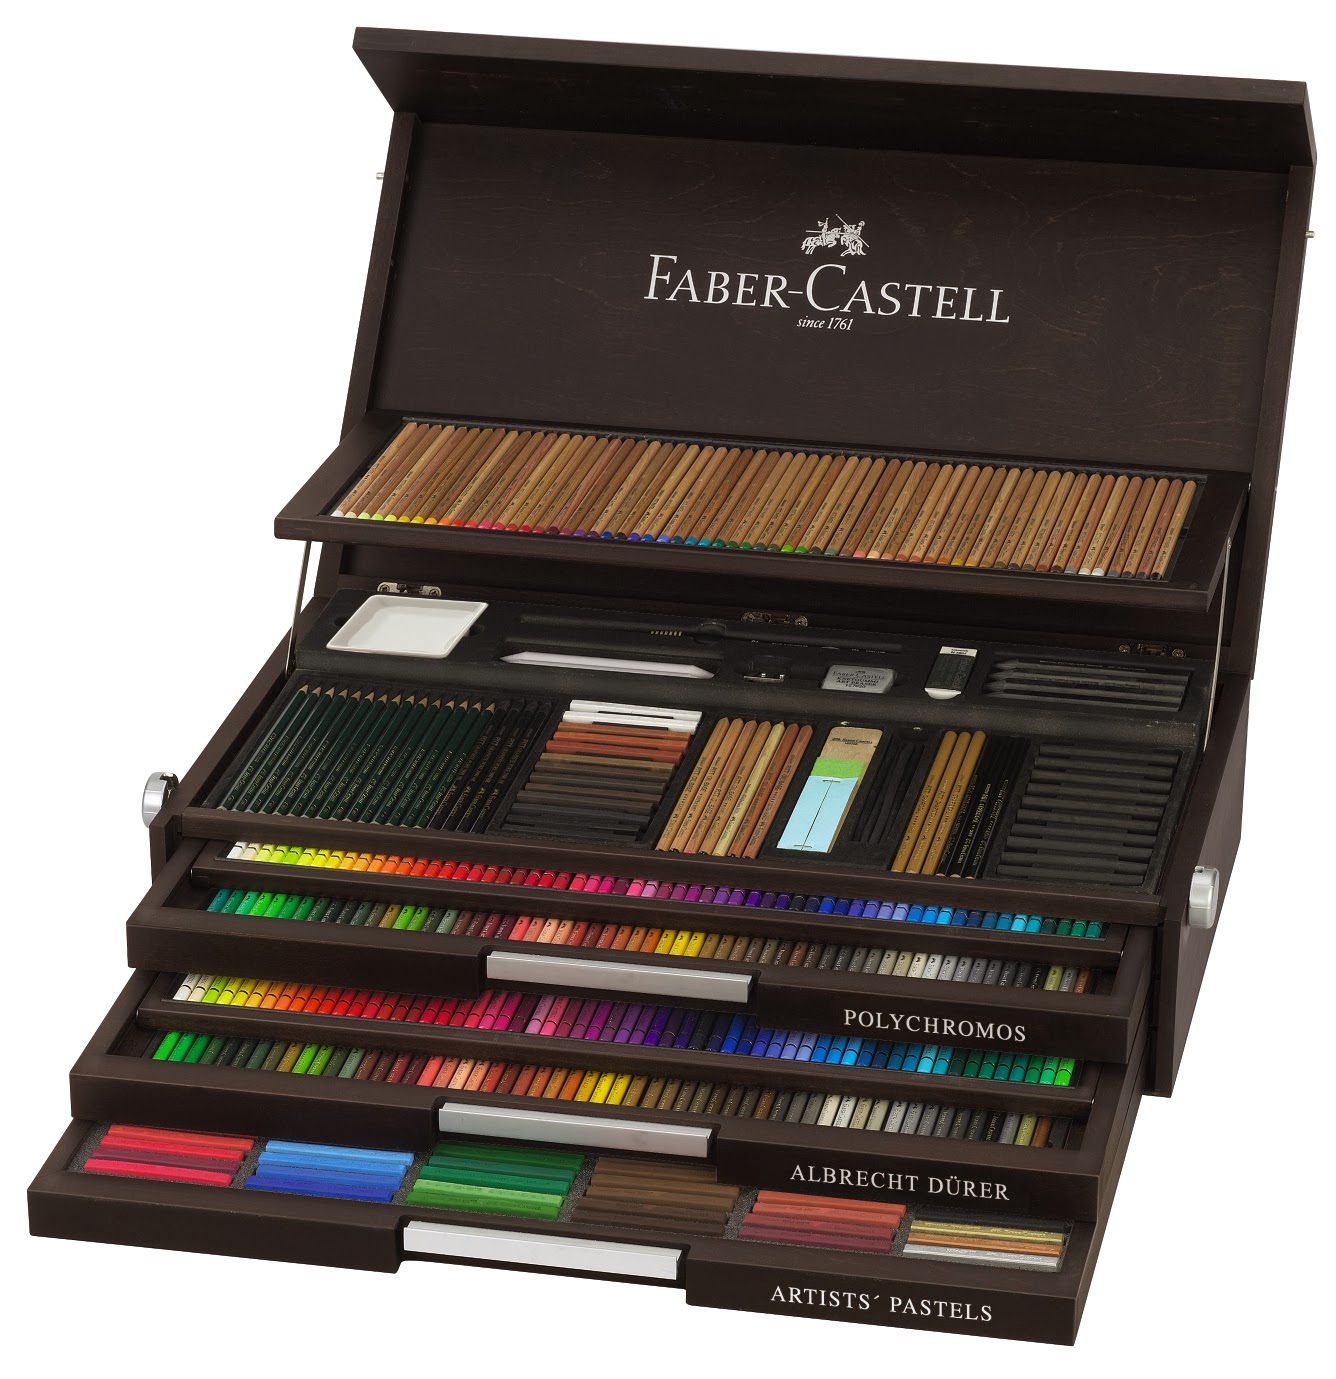 limited edition faber castell 250th anniversary box set. Black Bedroom Furniture Sets. Home Design Ideas